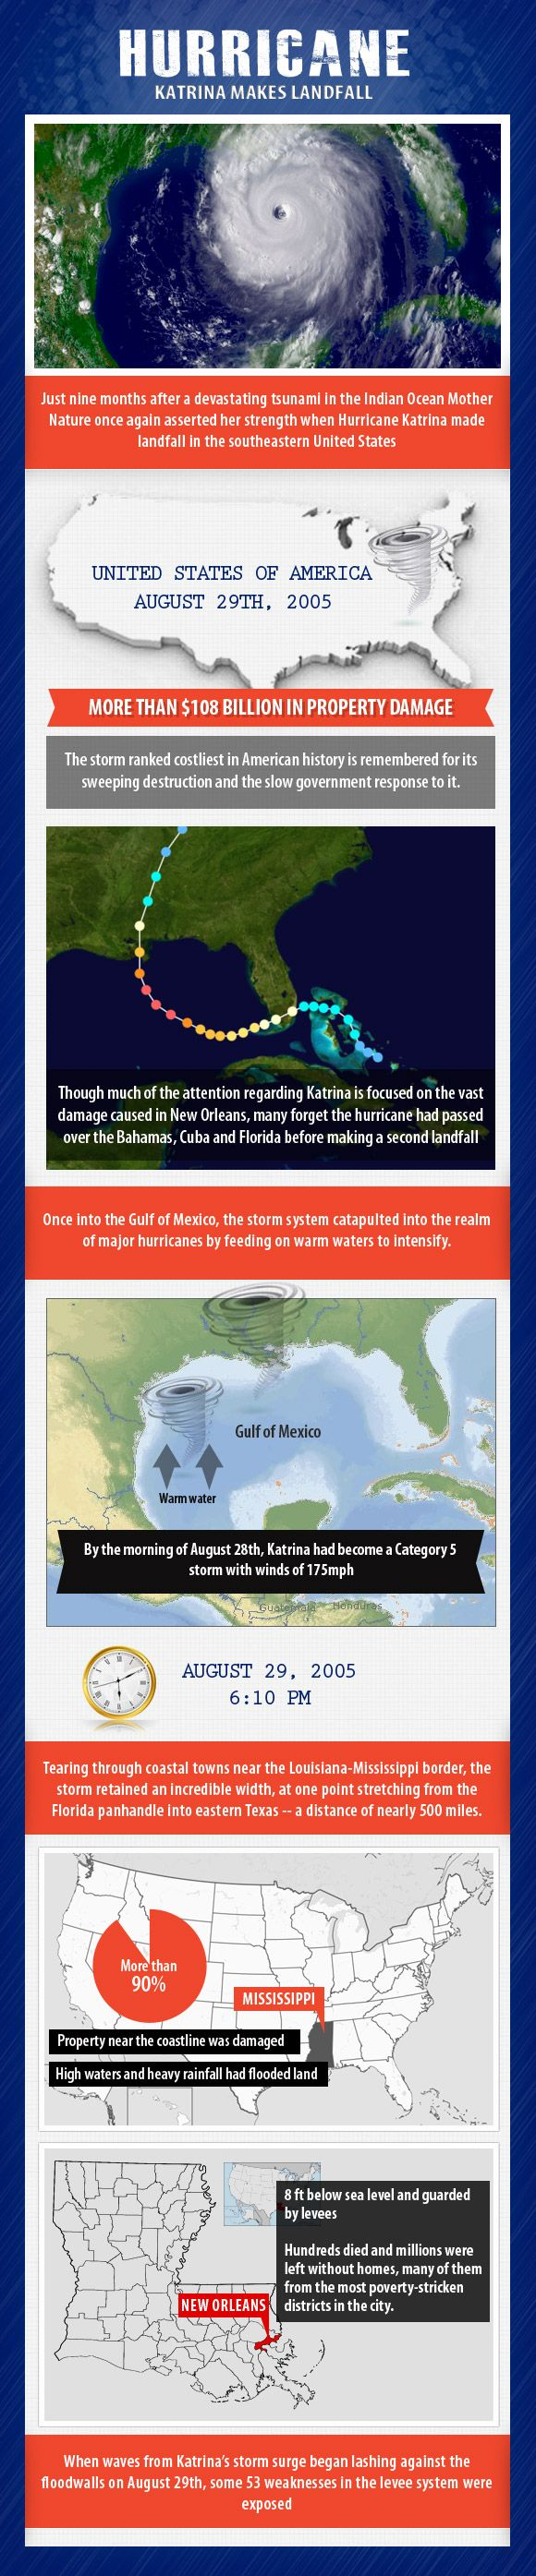 Infographic of August 29, 2005 CE – Hurricane Katrina Makes Landfall - On this day in History